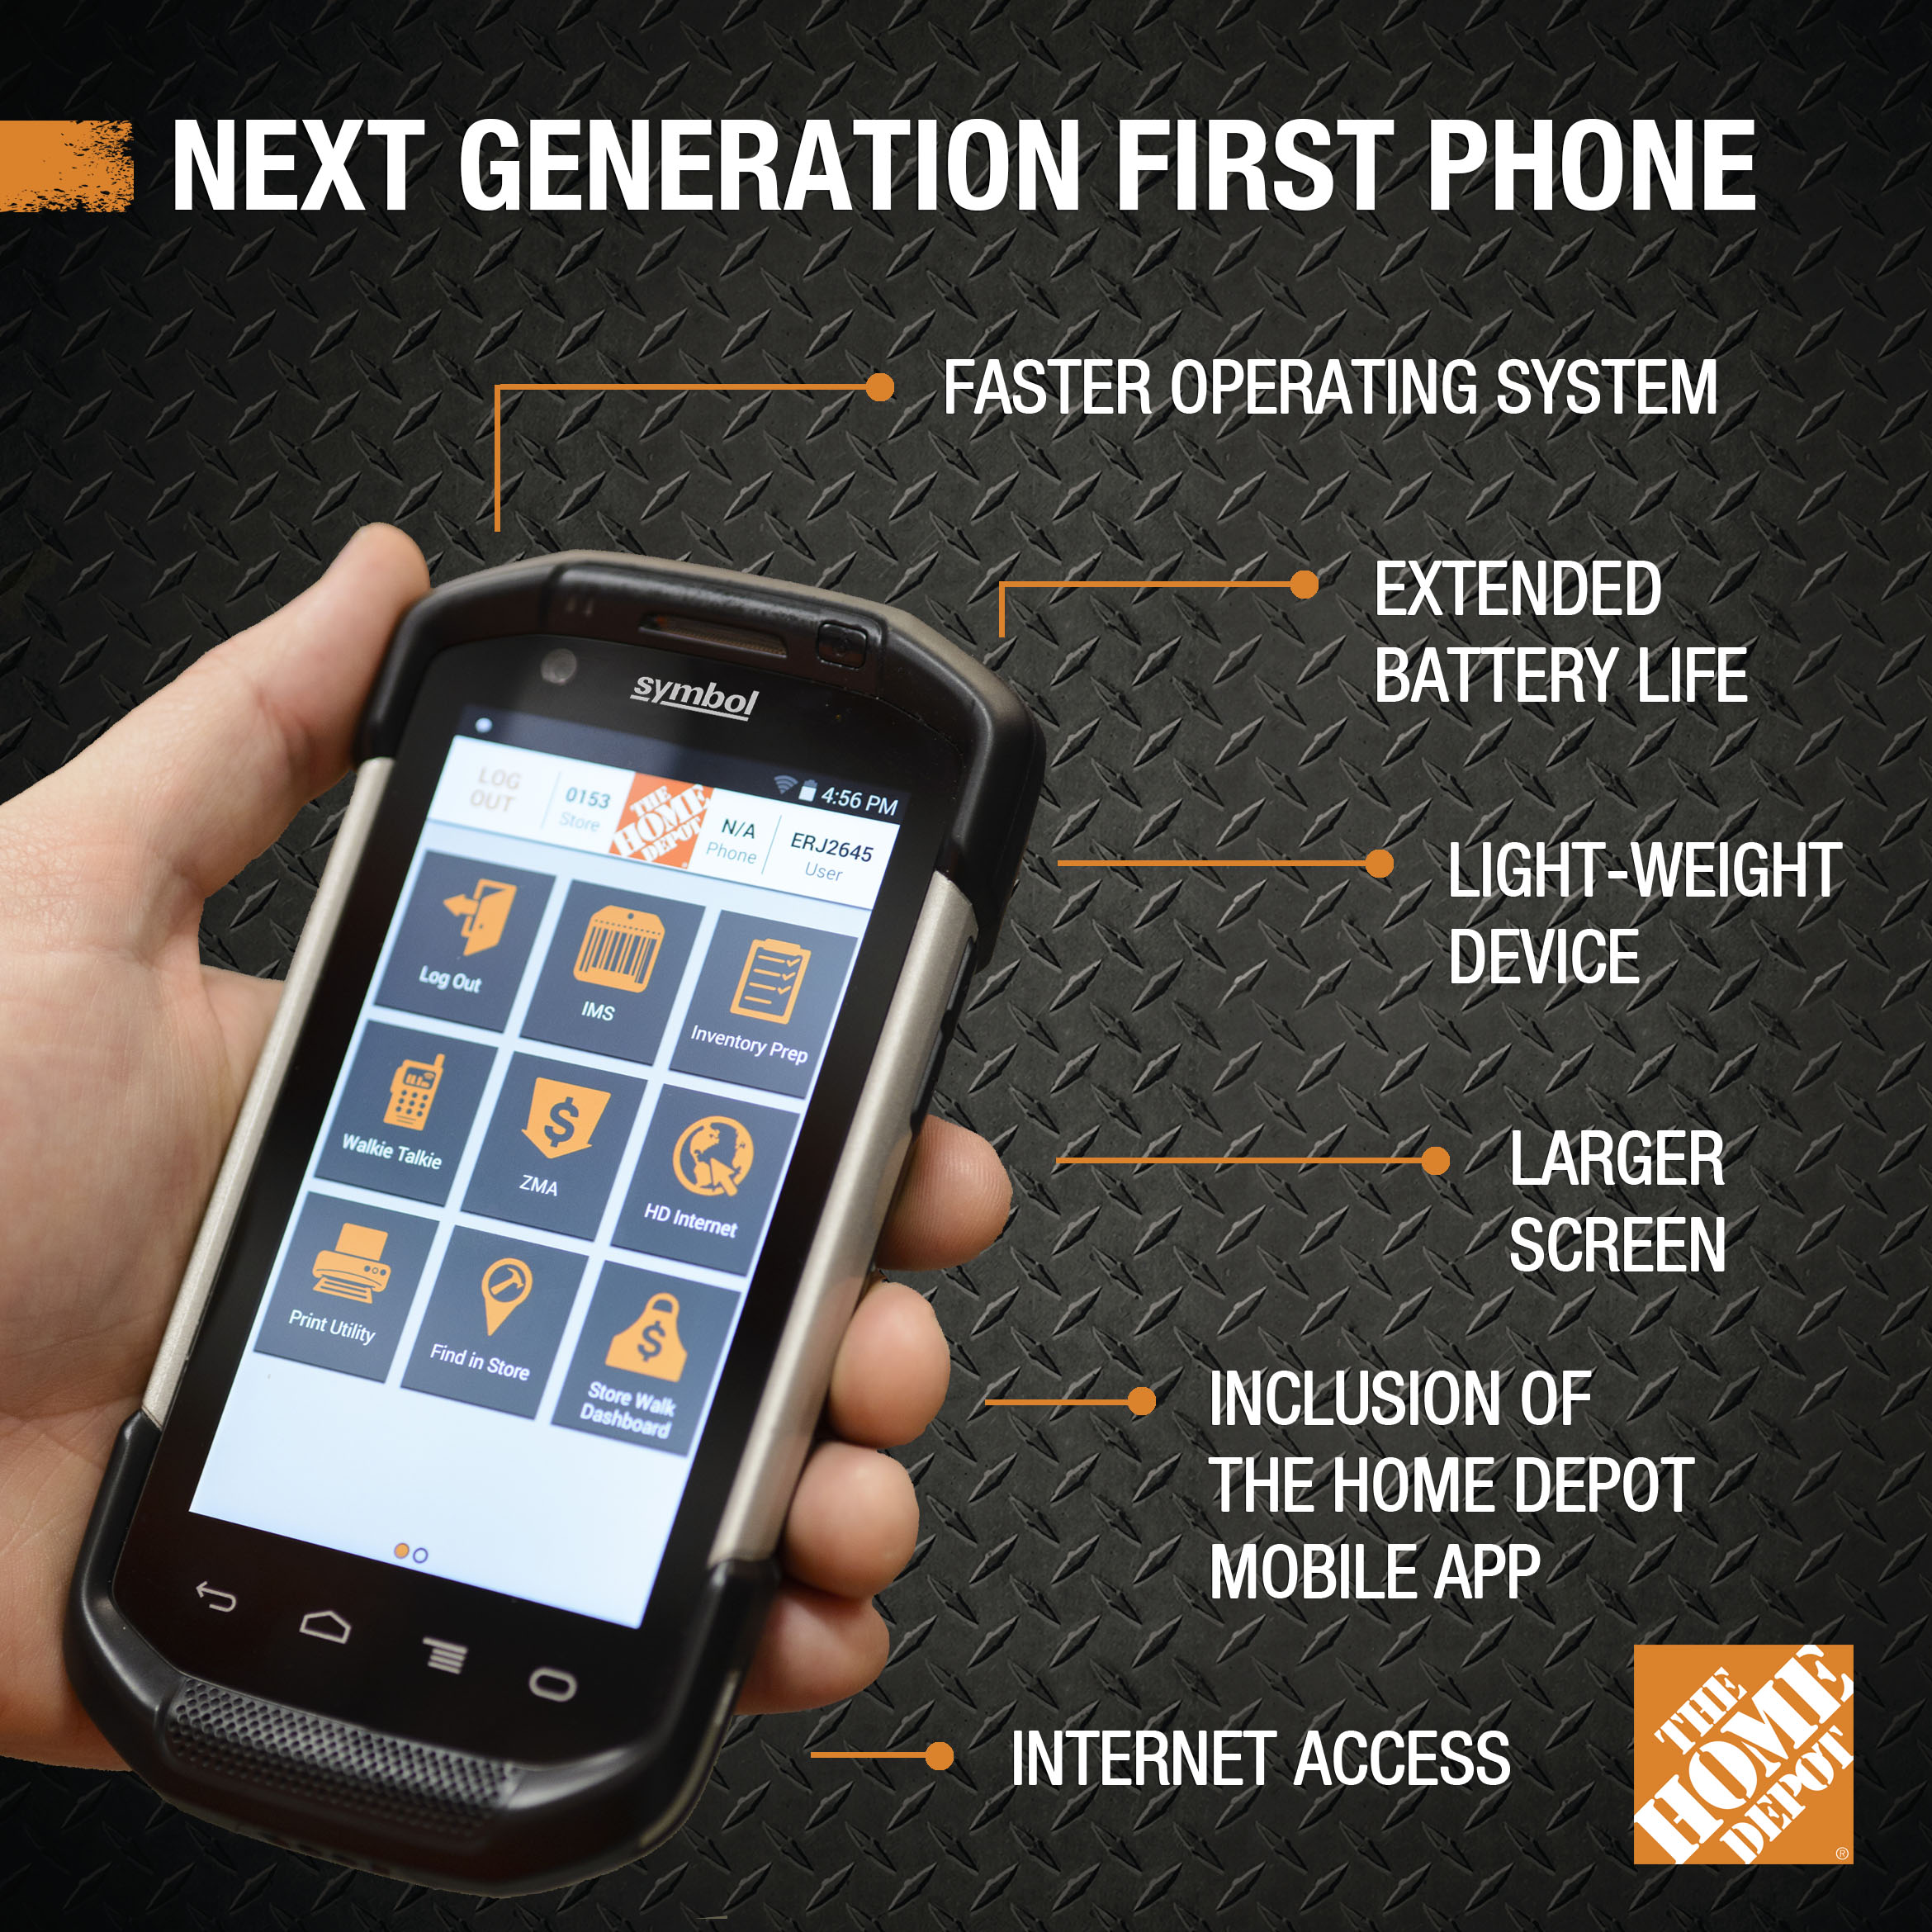 Next Generation First Phone Infographic